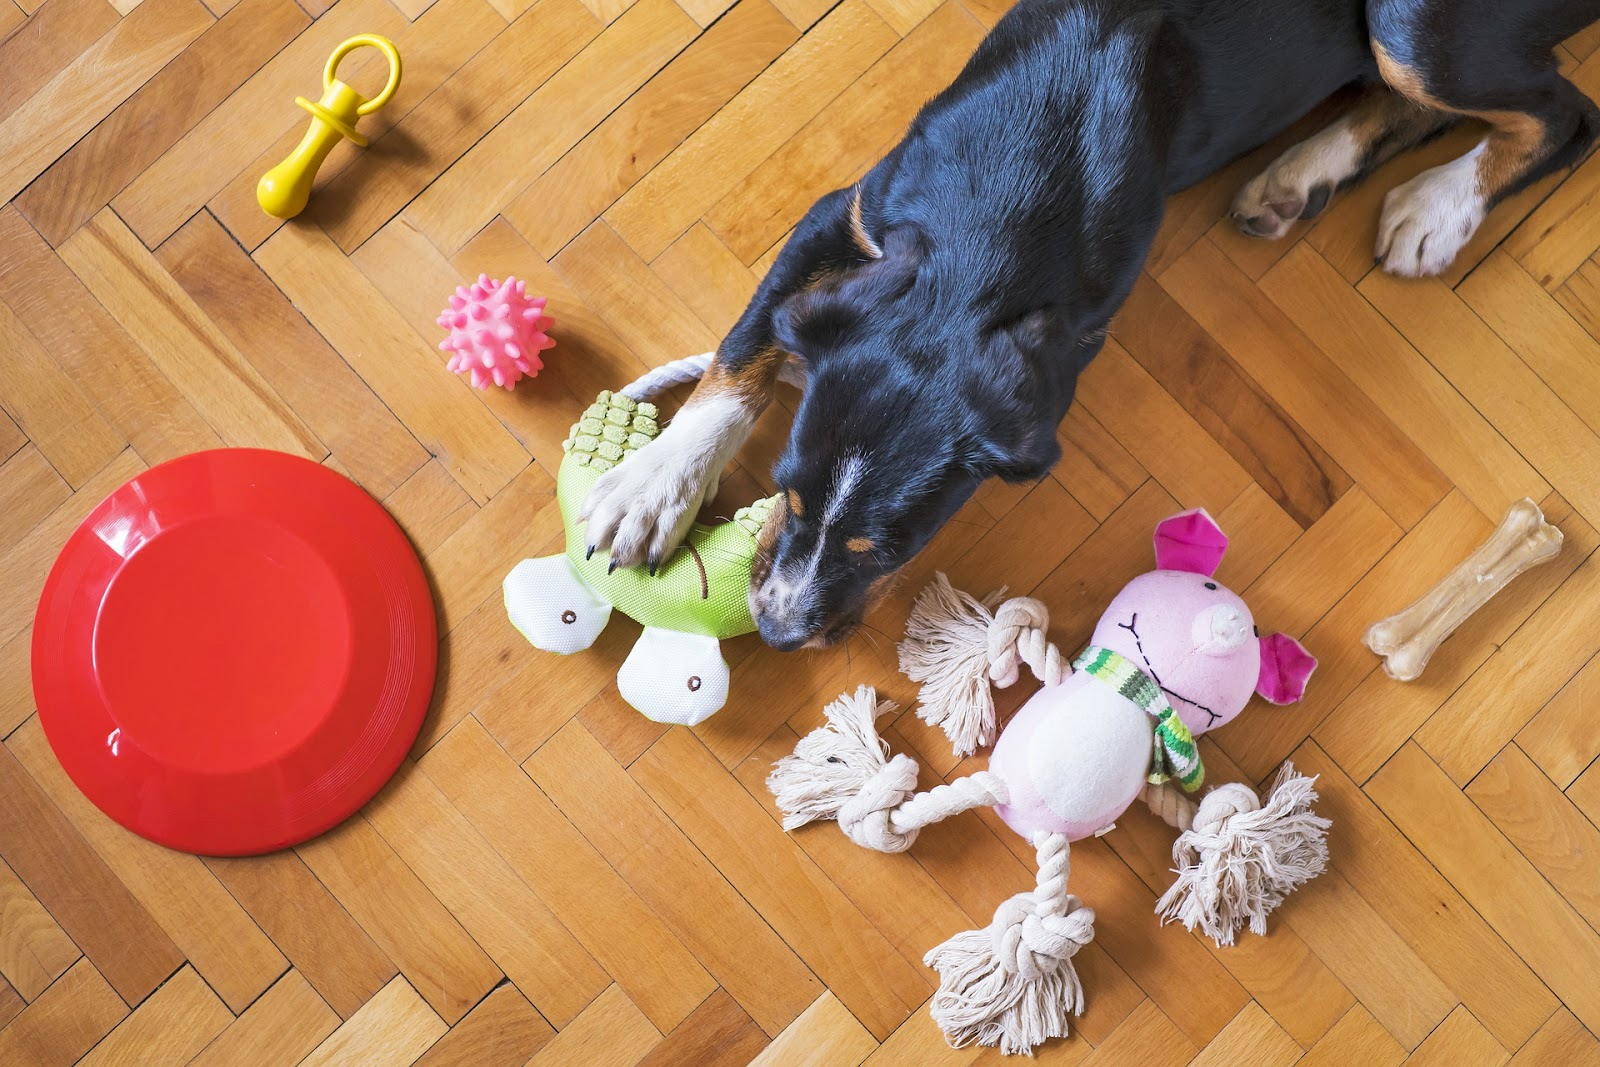 A dog on the floor playing with a variety of toys.